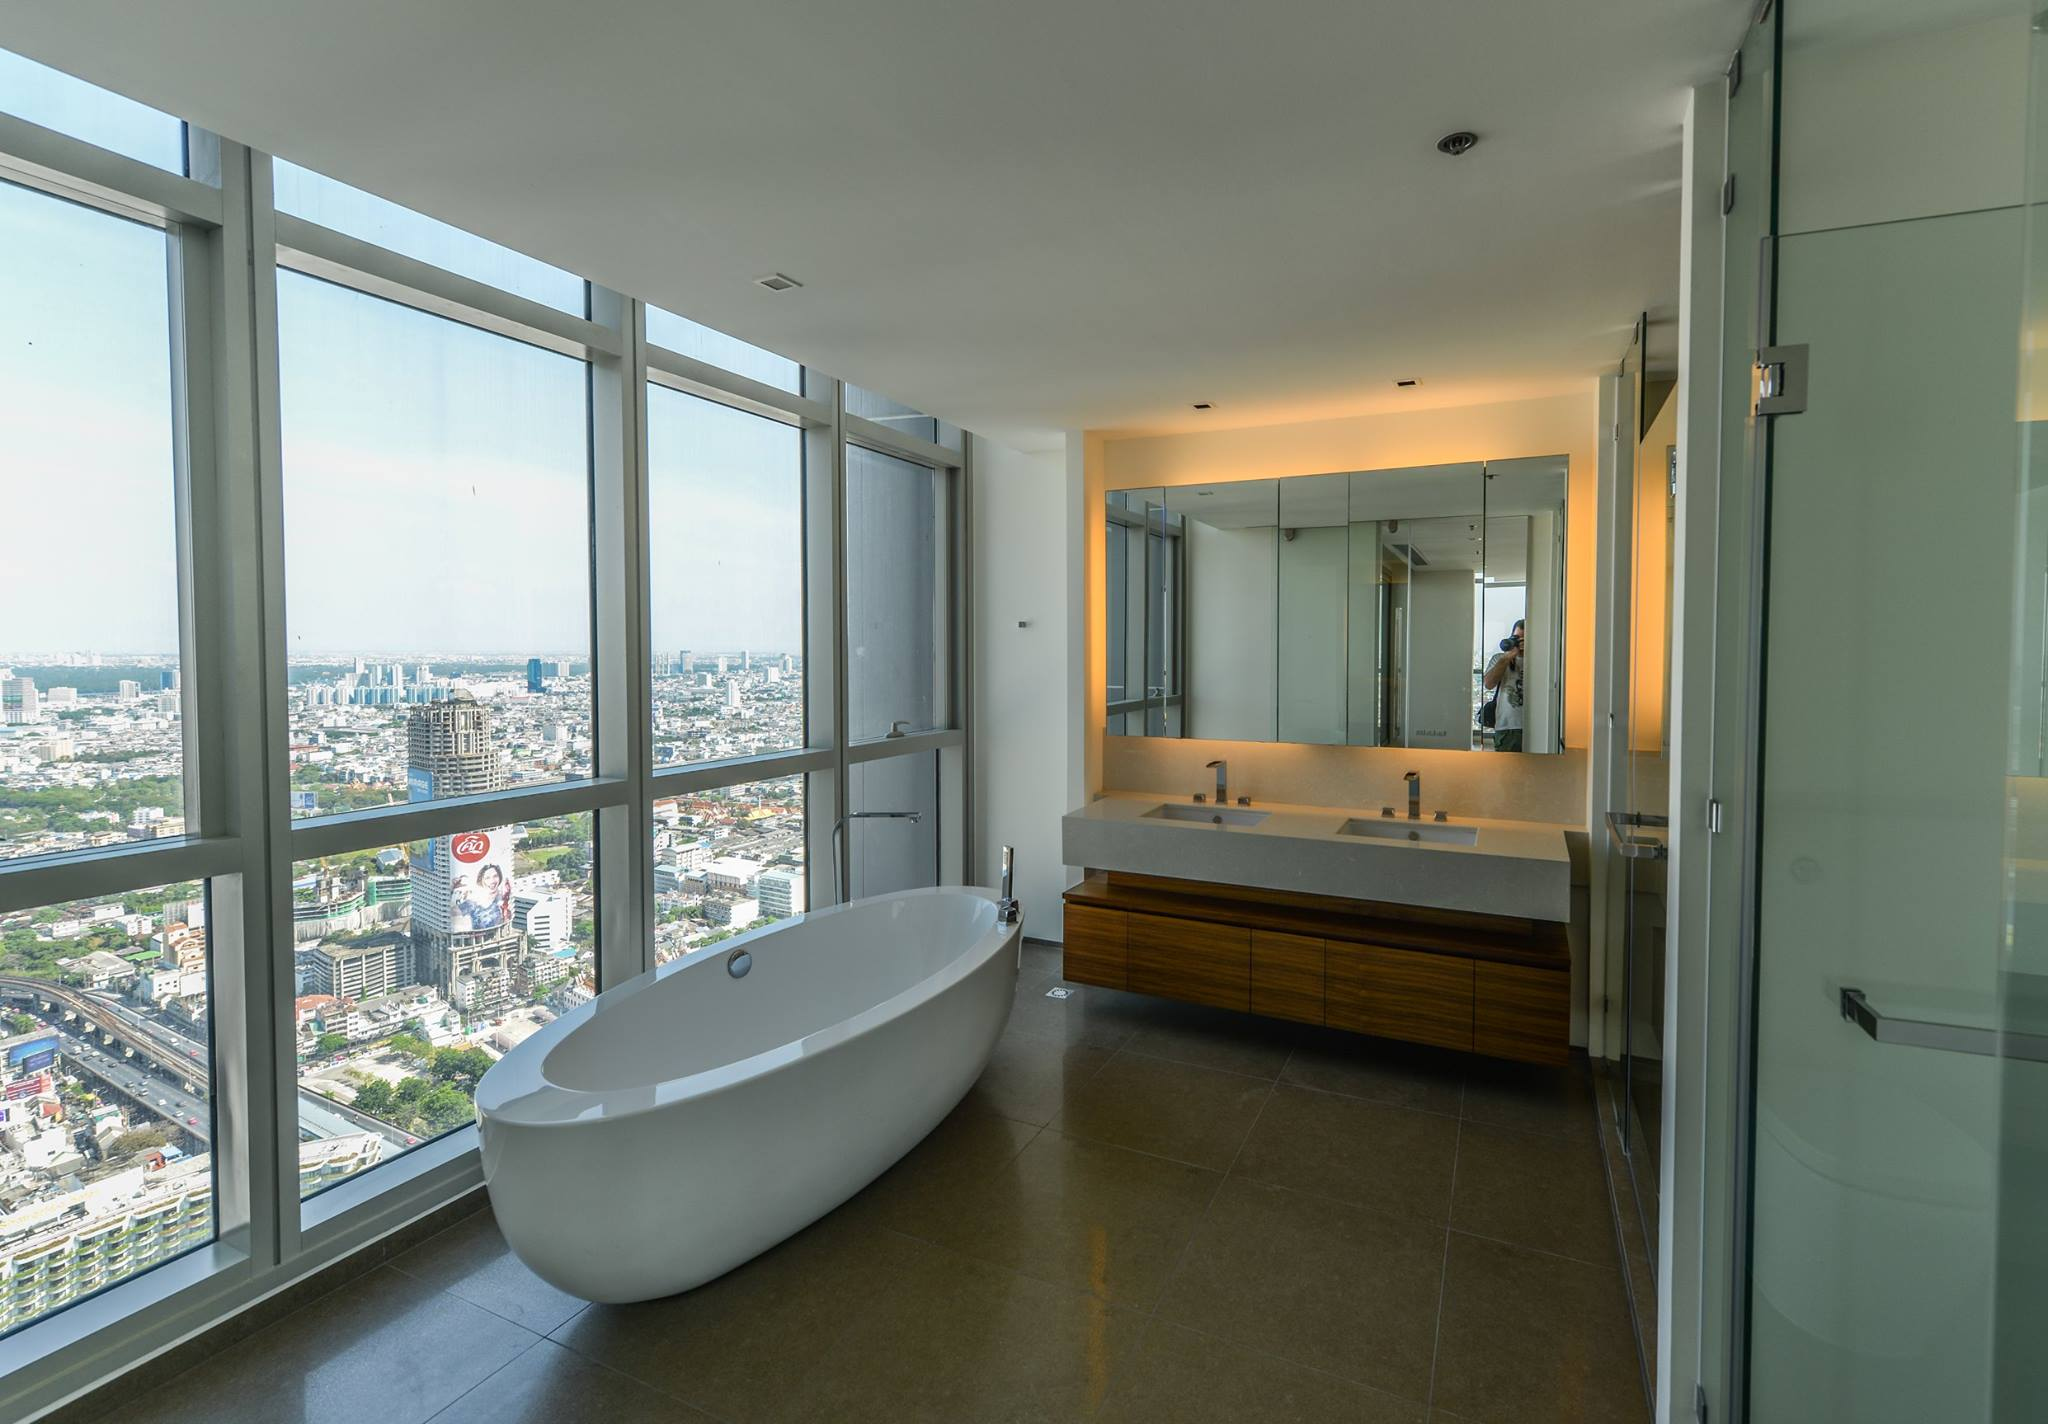 VisionQuest Thailand Property Agency's The River Penthouse 942sq.m spectacular 180 degrees river and city views 27